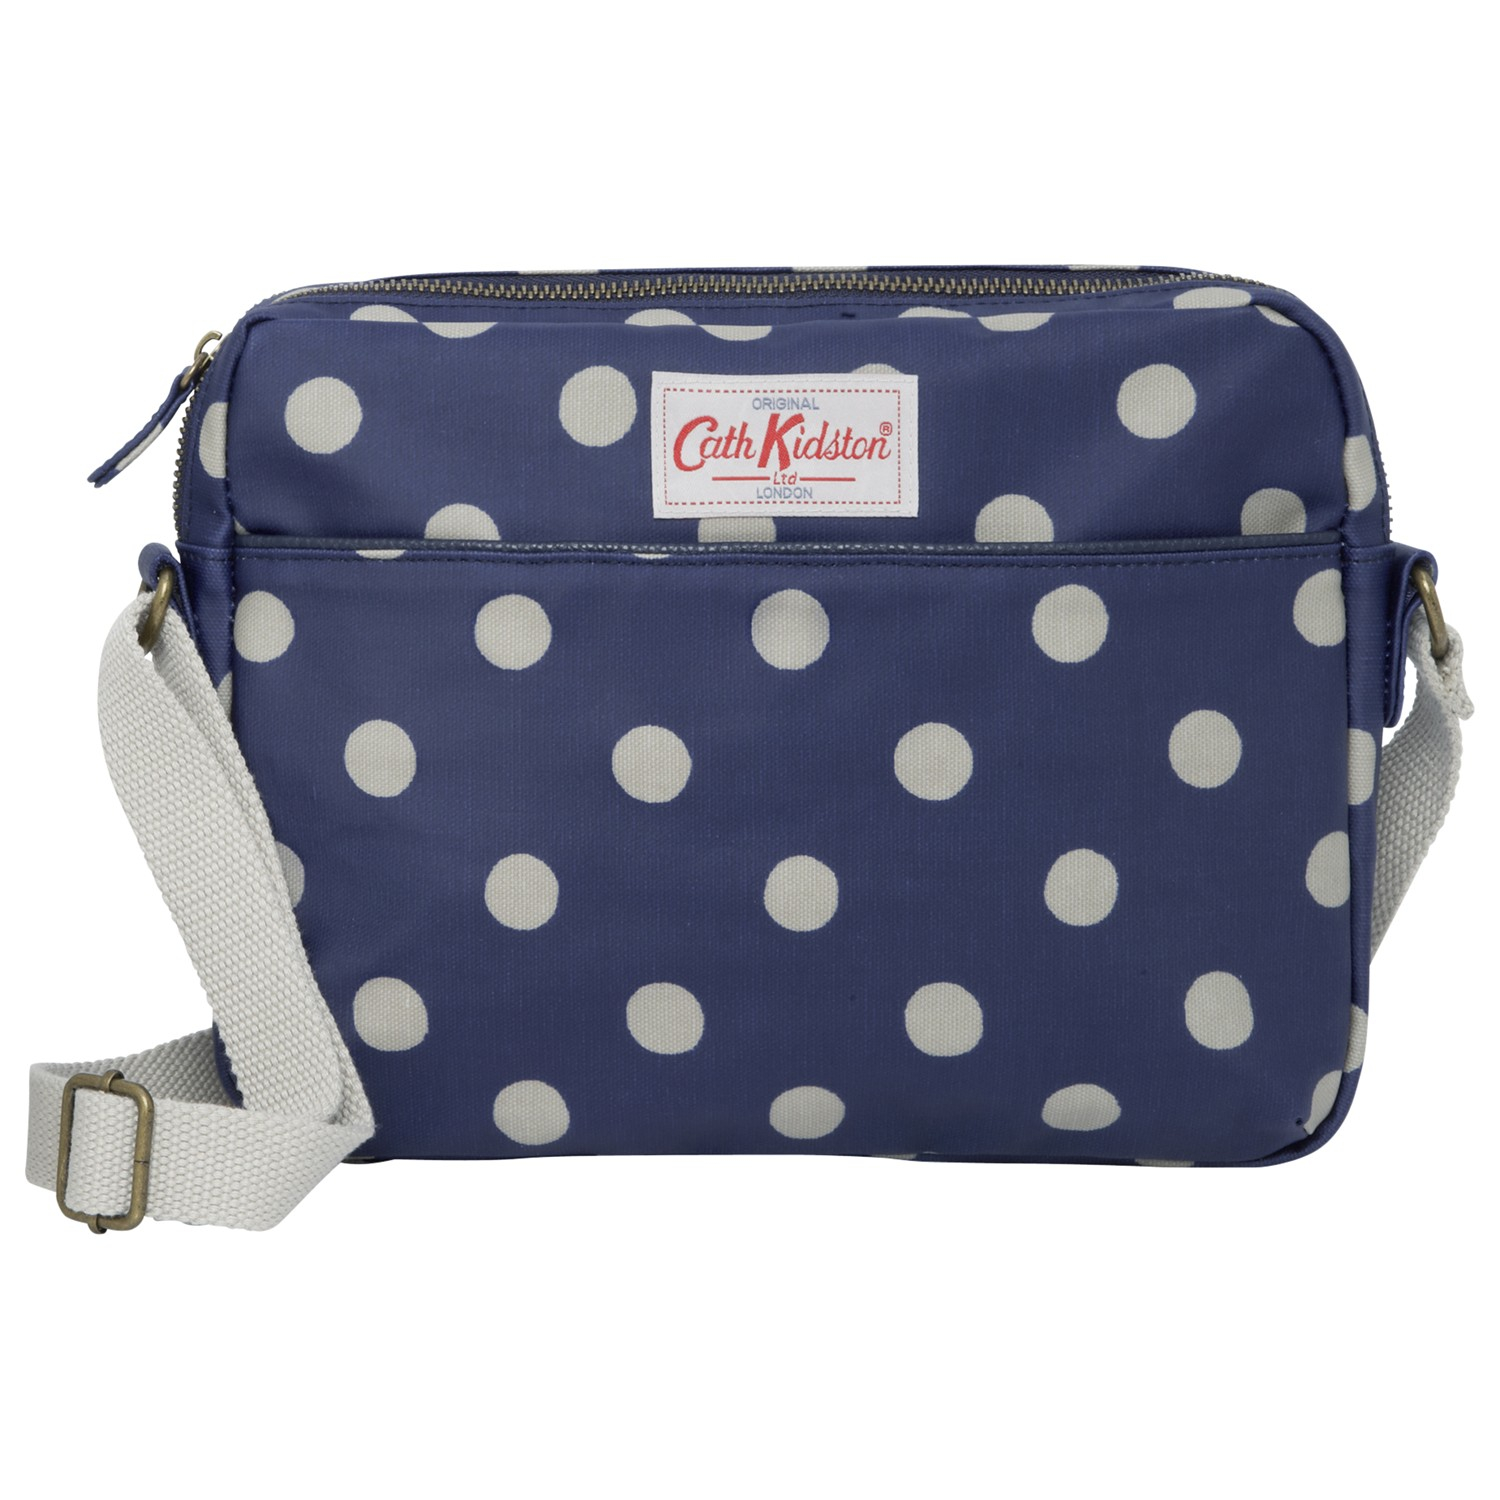 cath kidston button spot bag for in blue royal blue